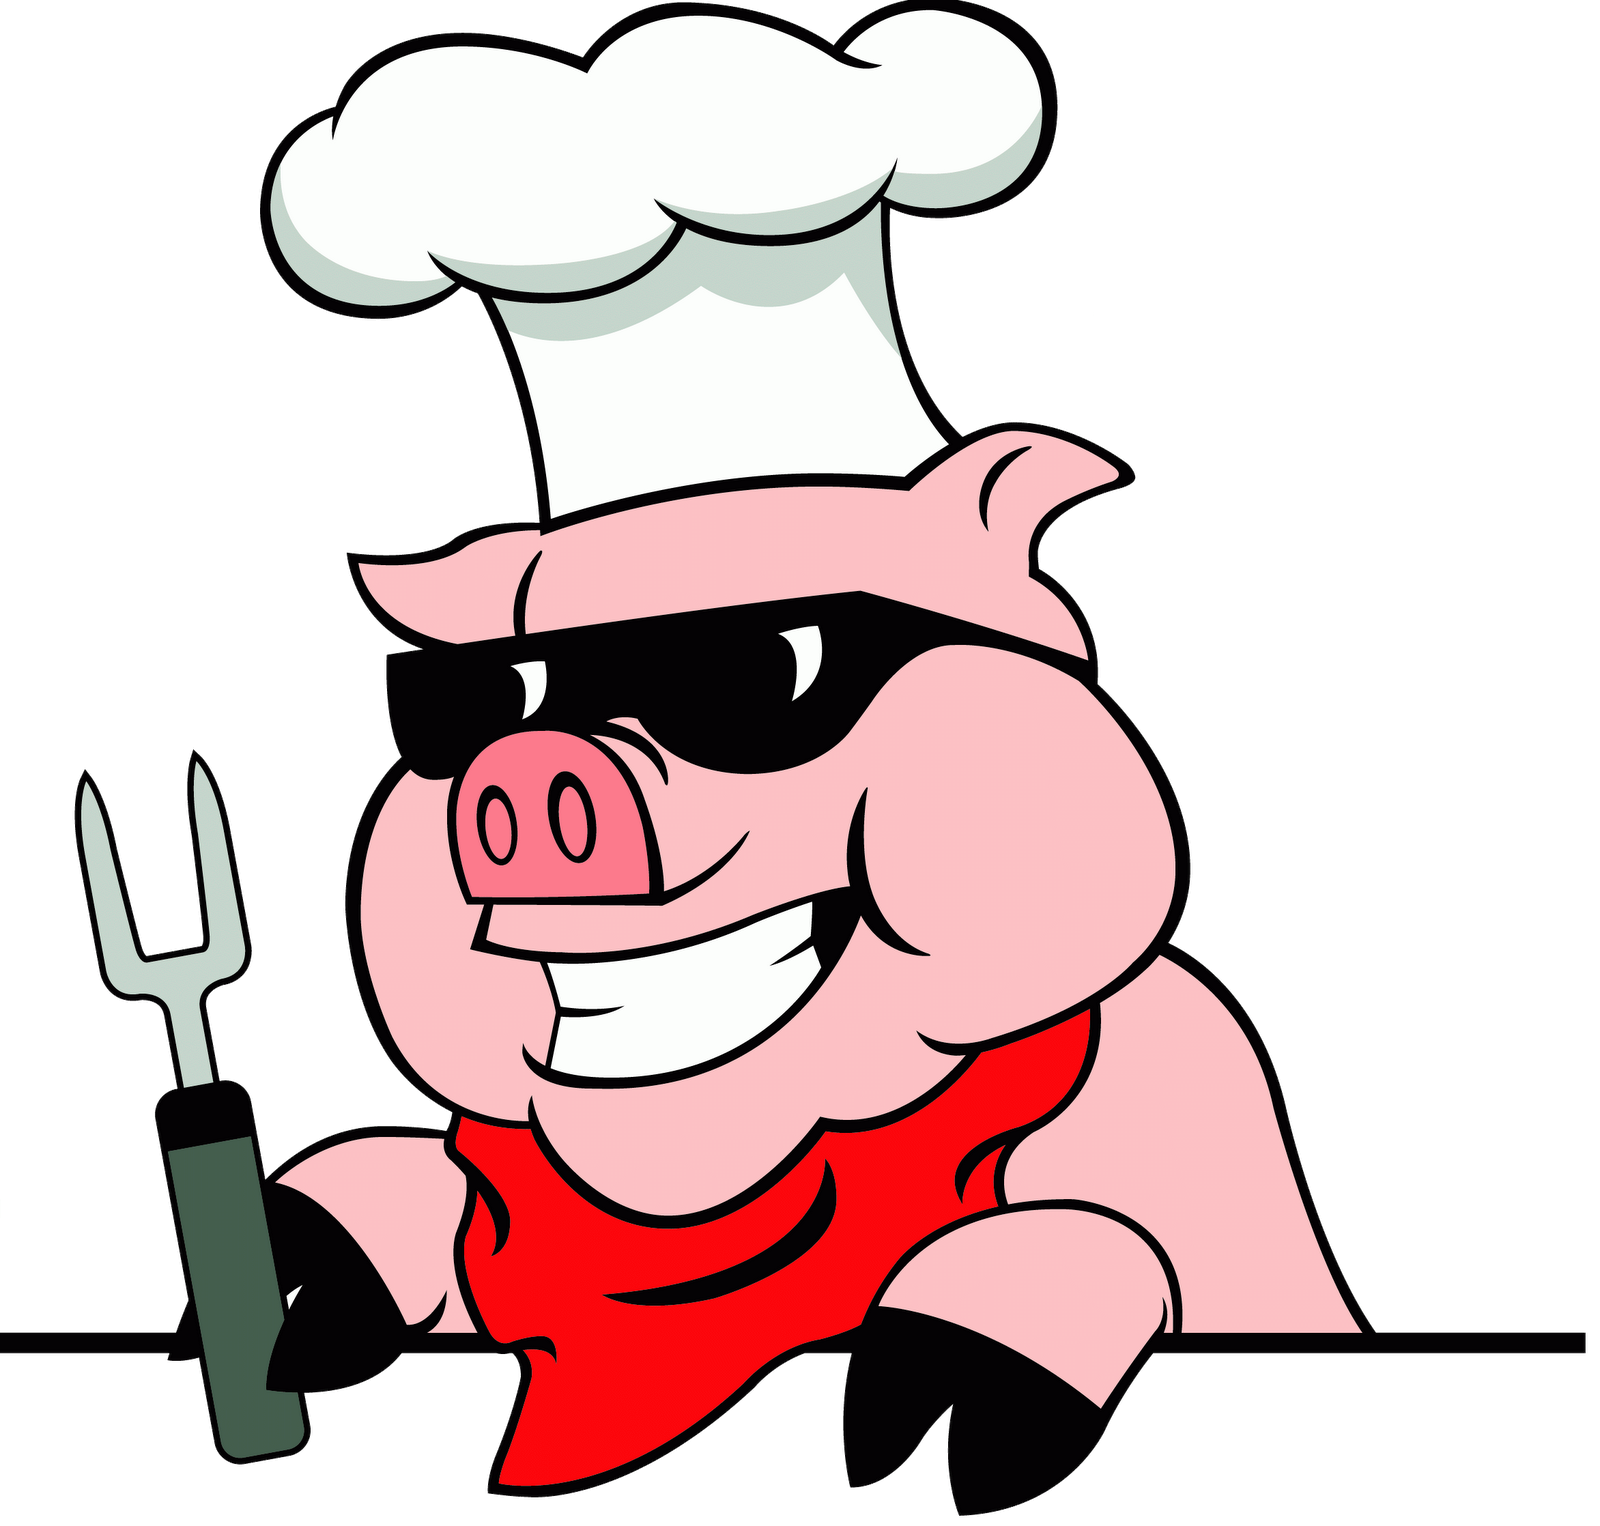 image Flippers bbq pit free. Grill clipart drawn